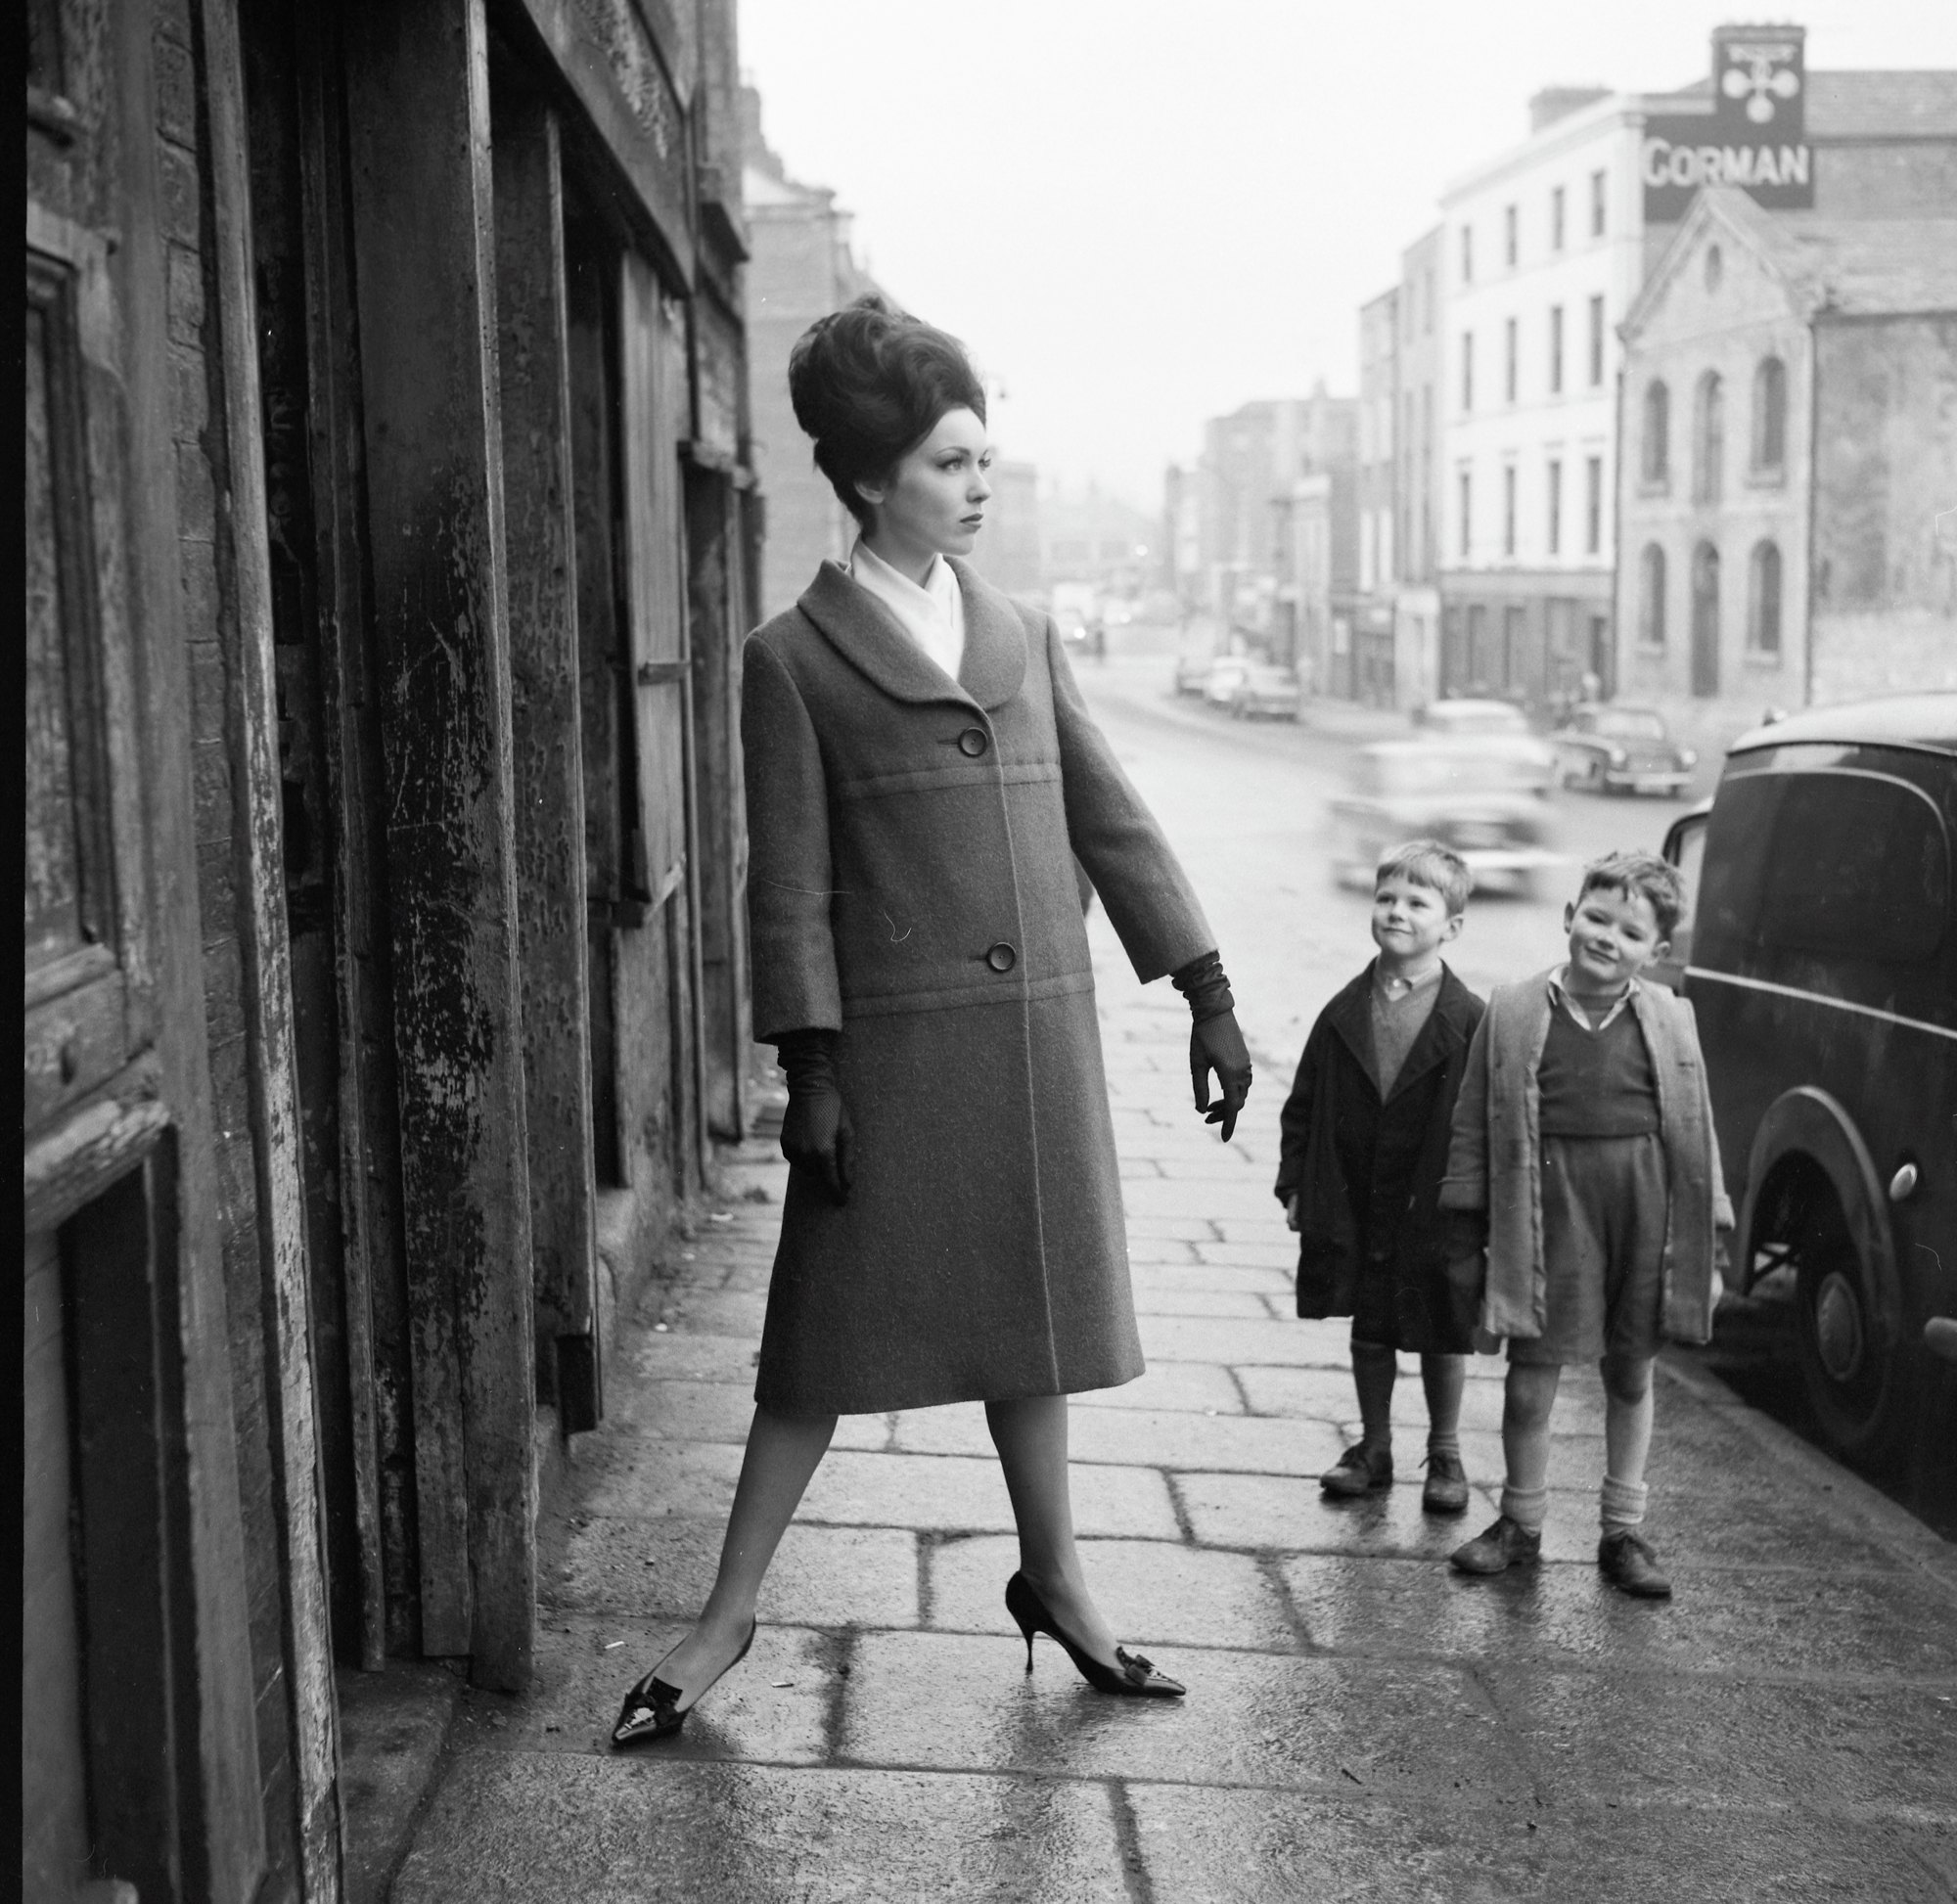 Ireland 1960s This is American model Linda Ward (later O'Reilly) posing, while two local boys give her outfit the once over… We discovered more about our elegant American model, Linda Ward, who married Brendan O'Reilly, presenter of Sports Stadium on RTÉ Television, and swapped New York for Dublin's modelling scene. Fantastically well done to derangedlemur for locating this photo at Winetavern Street, Dublin, given that the whole right hand streetscape is completely different today! Photographer: Colman Doyle Date: Between January 1960 and 1966